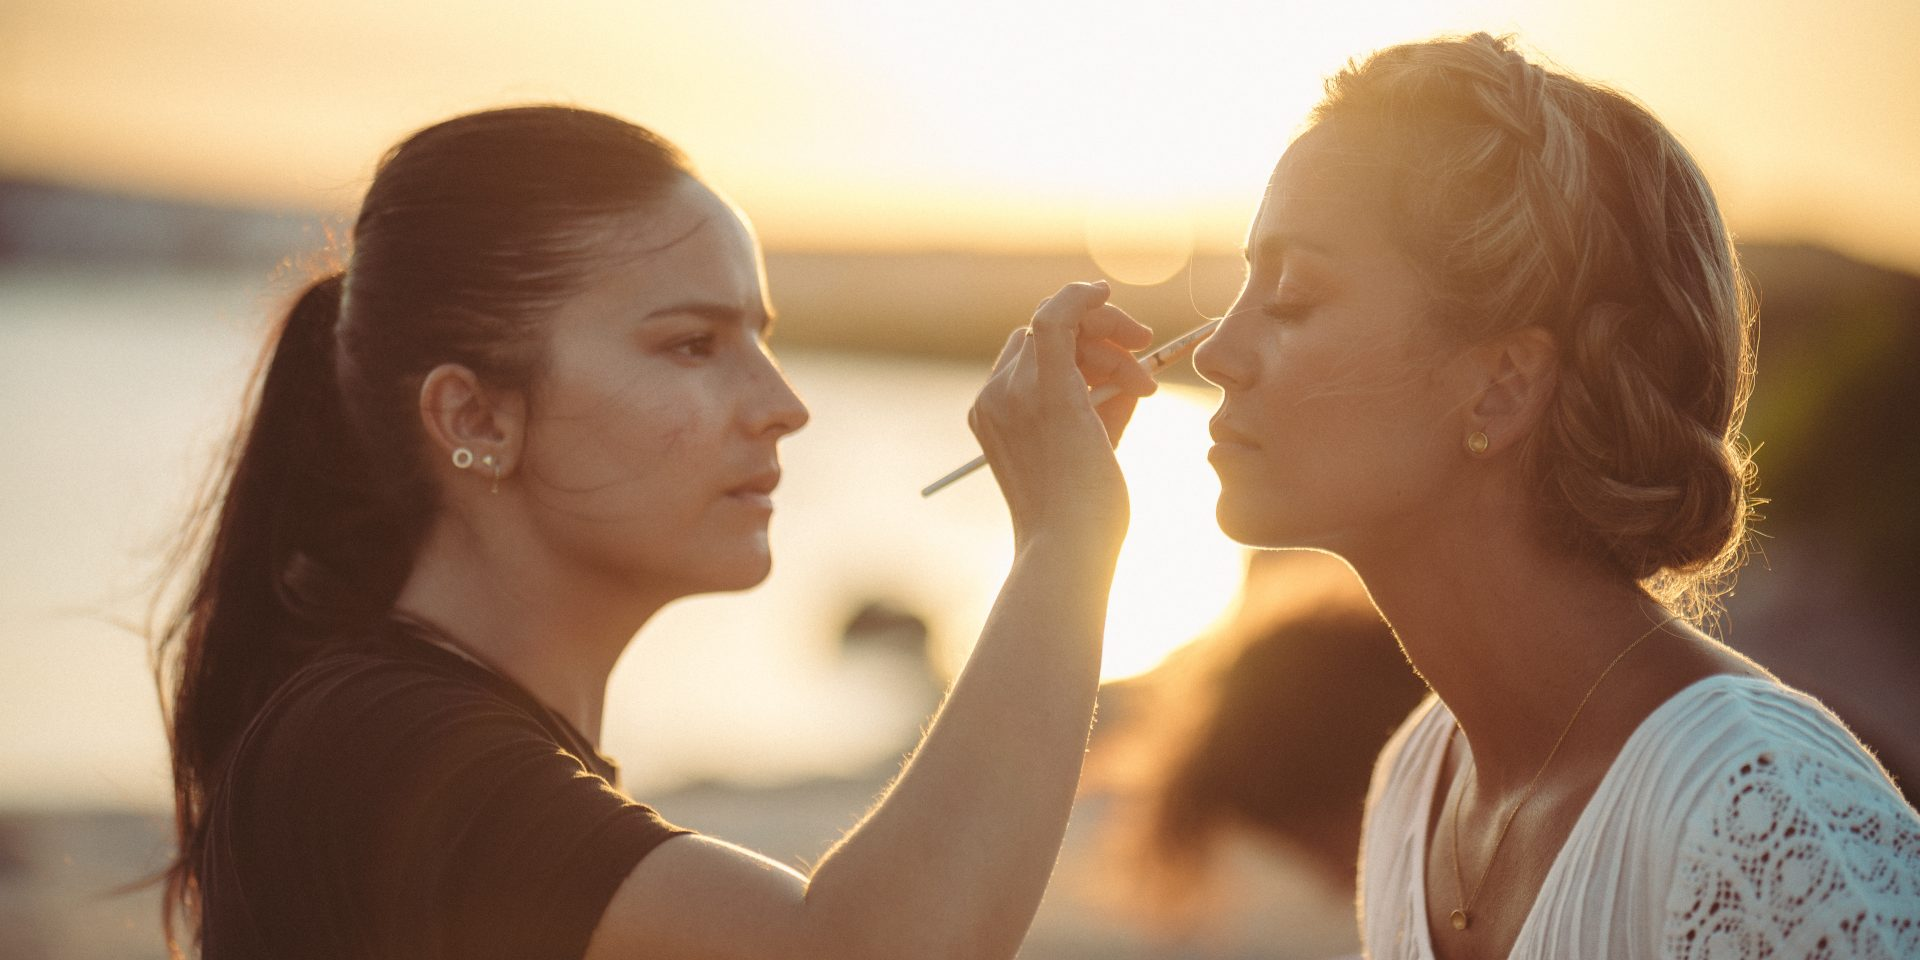 roisso menorca make up | Wedding and event photographer and videographer in Menorca and Mallorca